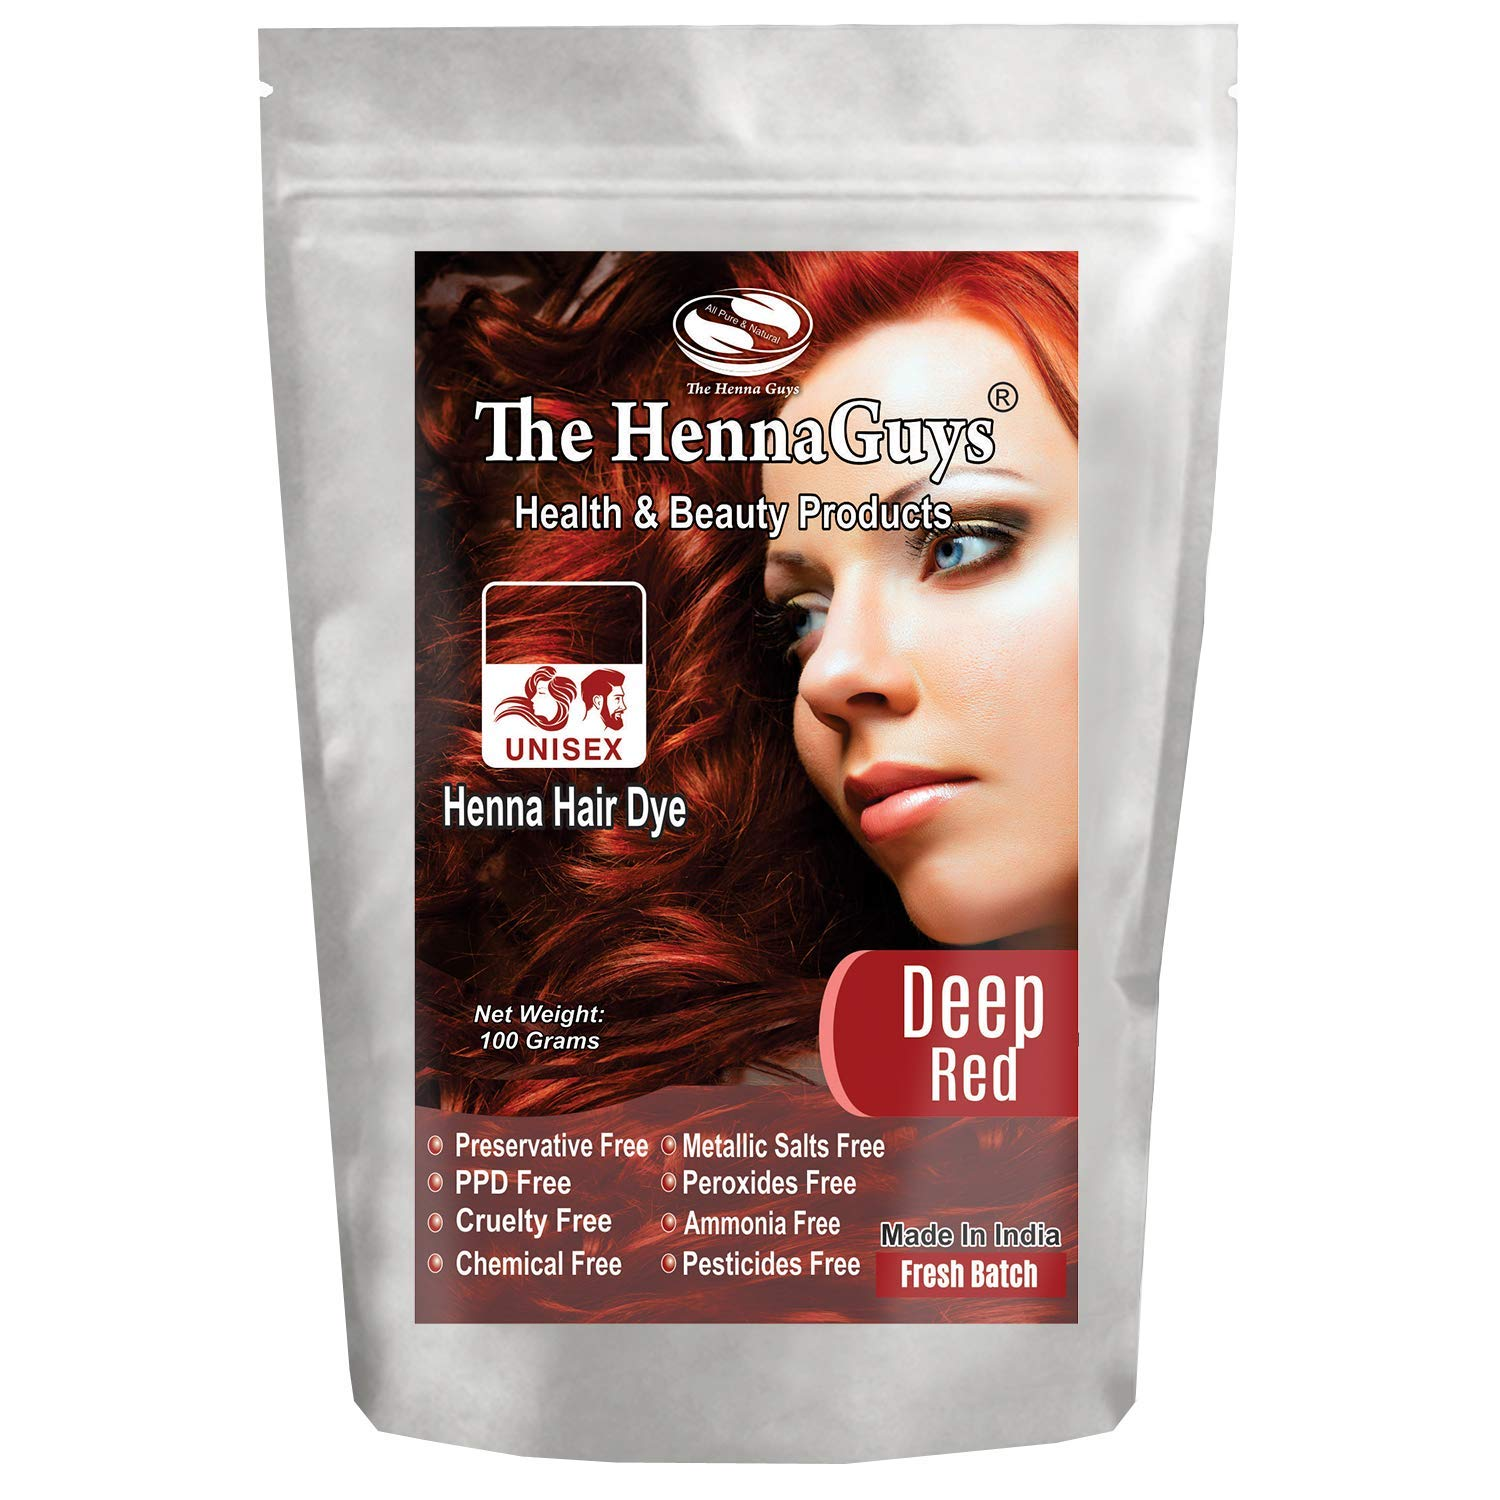 DEEP RED Henna Hair Color - 1 Pack - Best Red Henna for Hair, Natural Hair Color - Chemical Free Henna Hair Dye - The Henna Guys